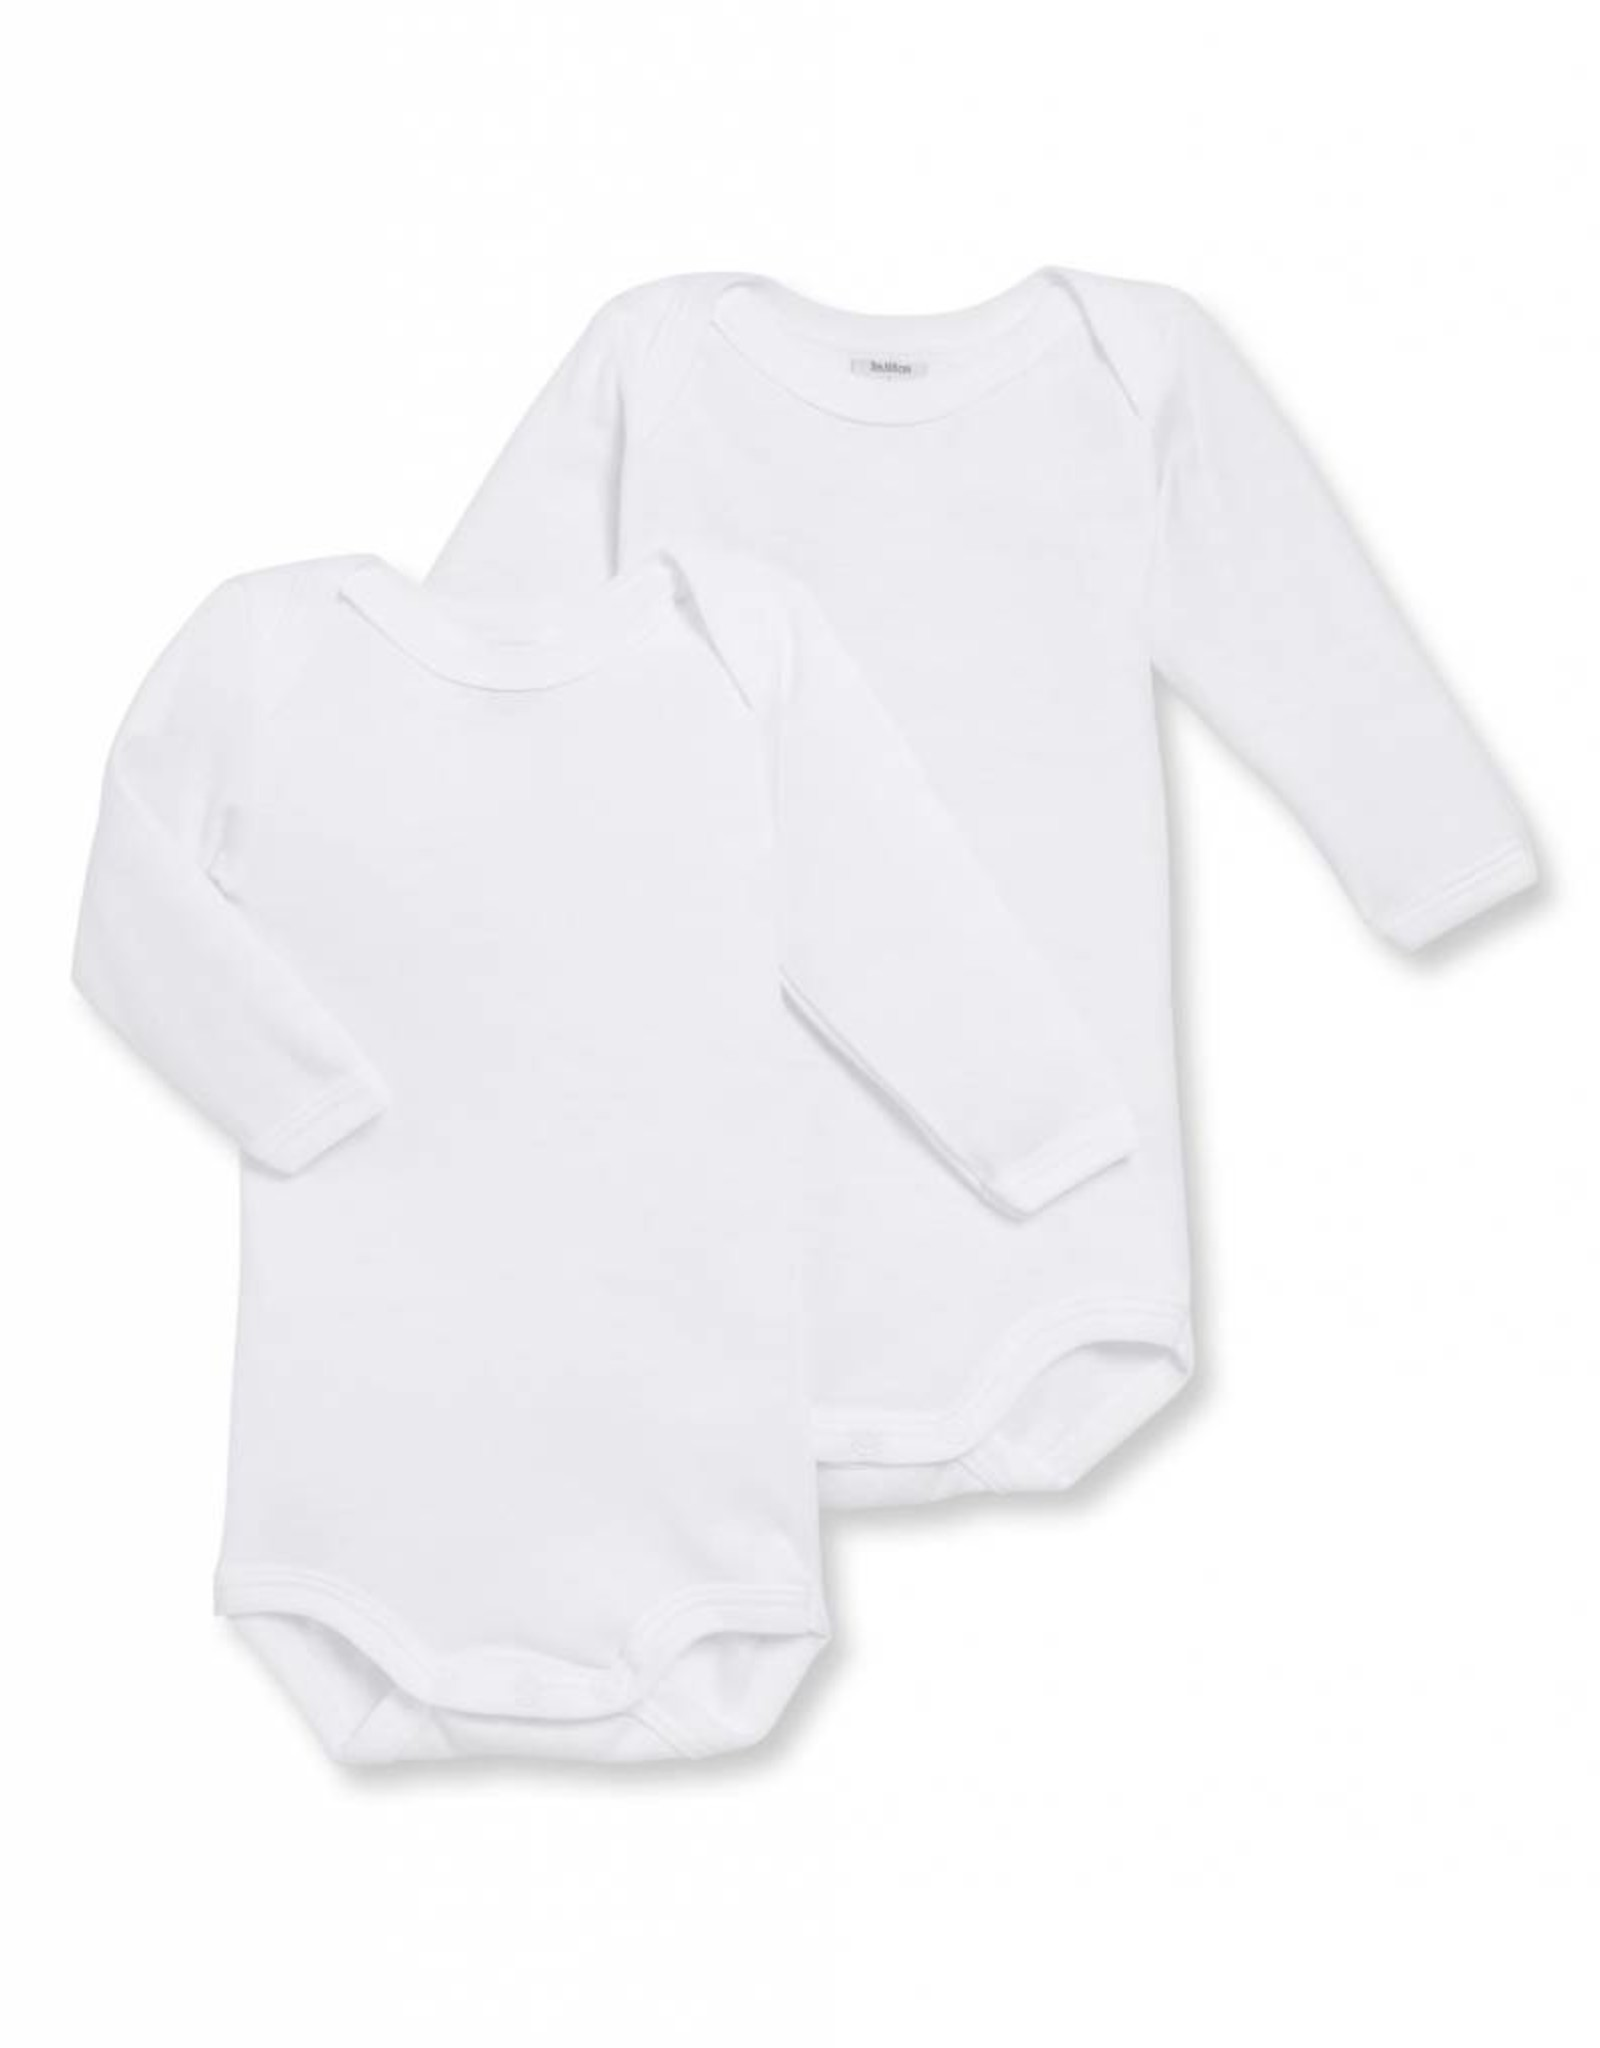 Set of 2 bodysuits, long sleeves